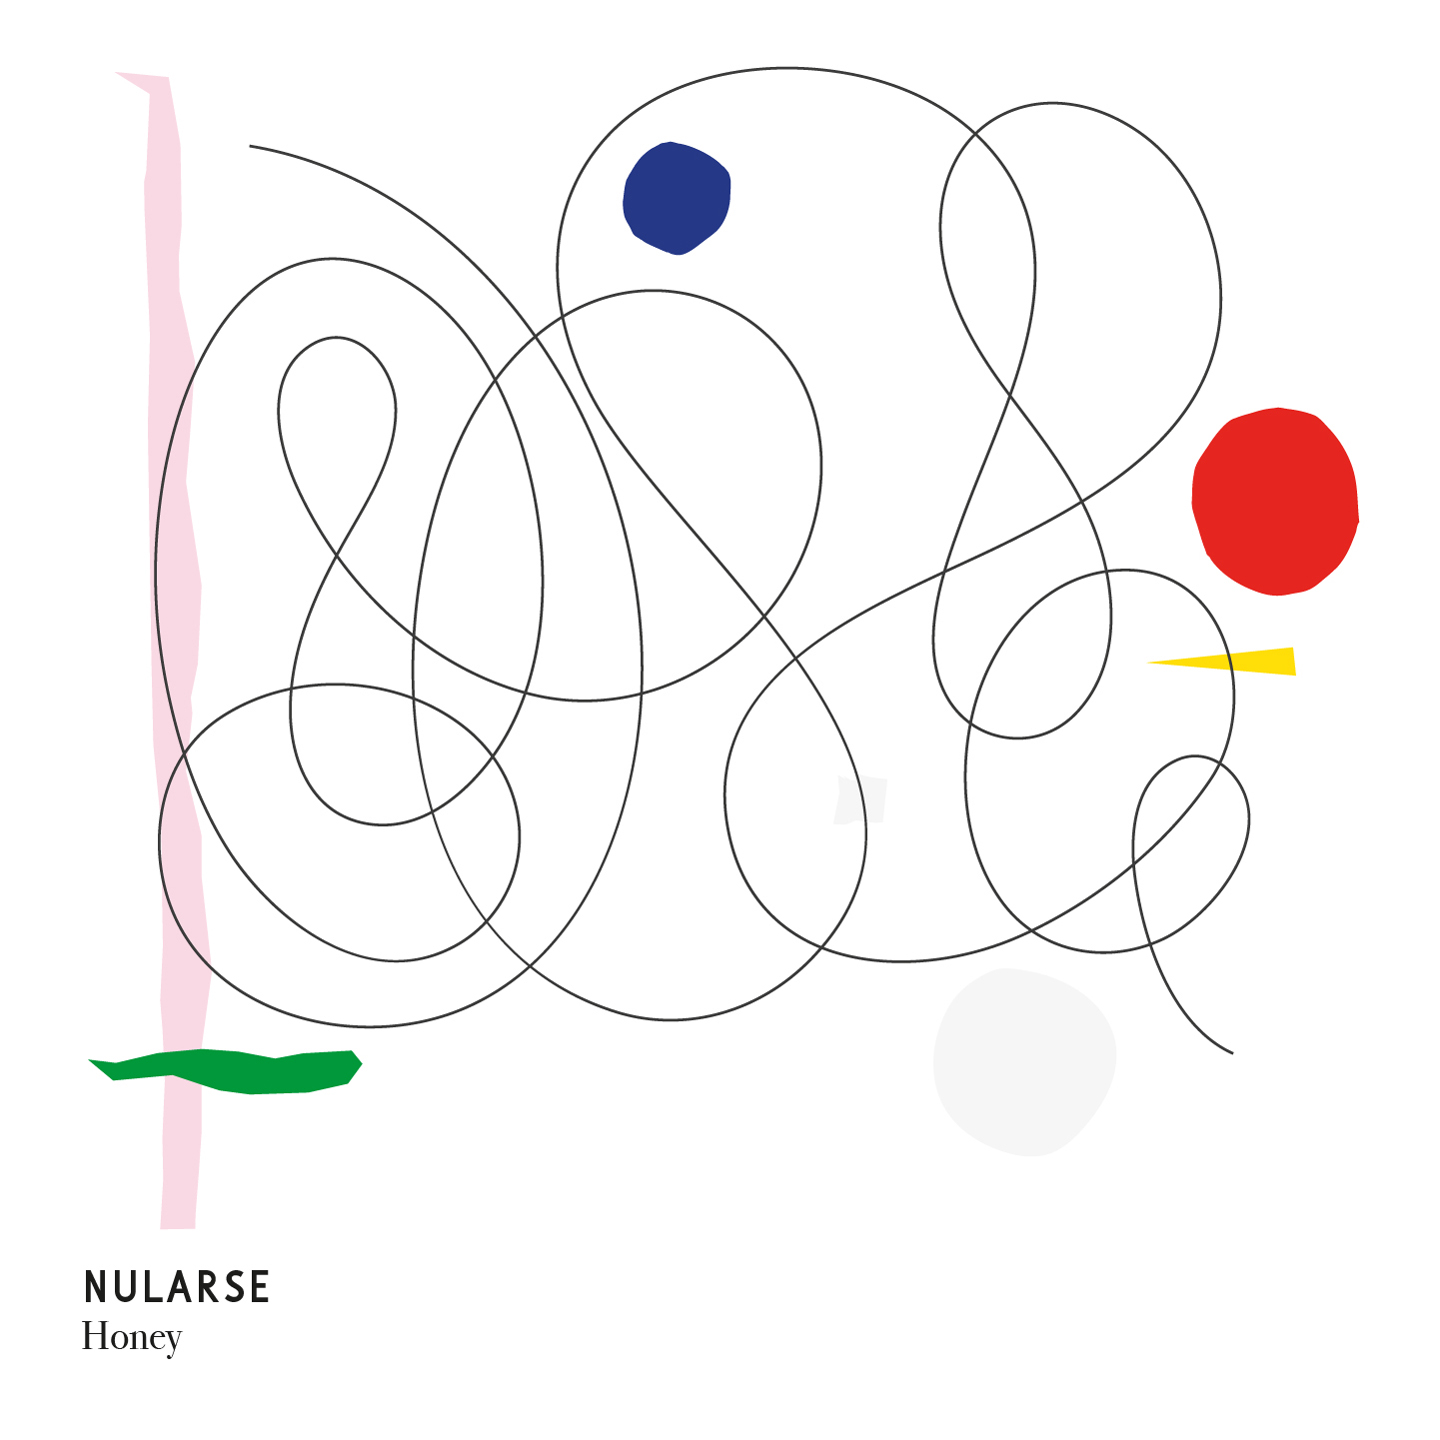 Nularse - Physical Law